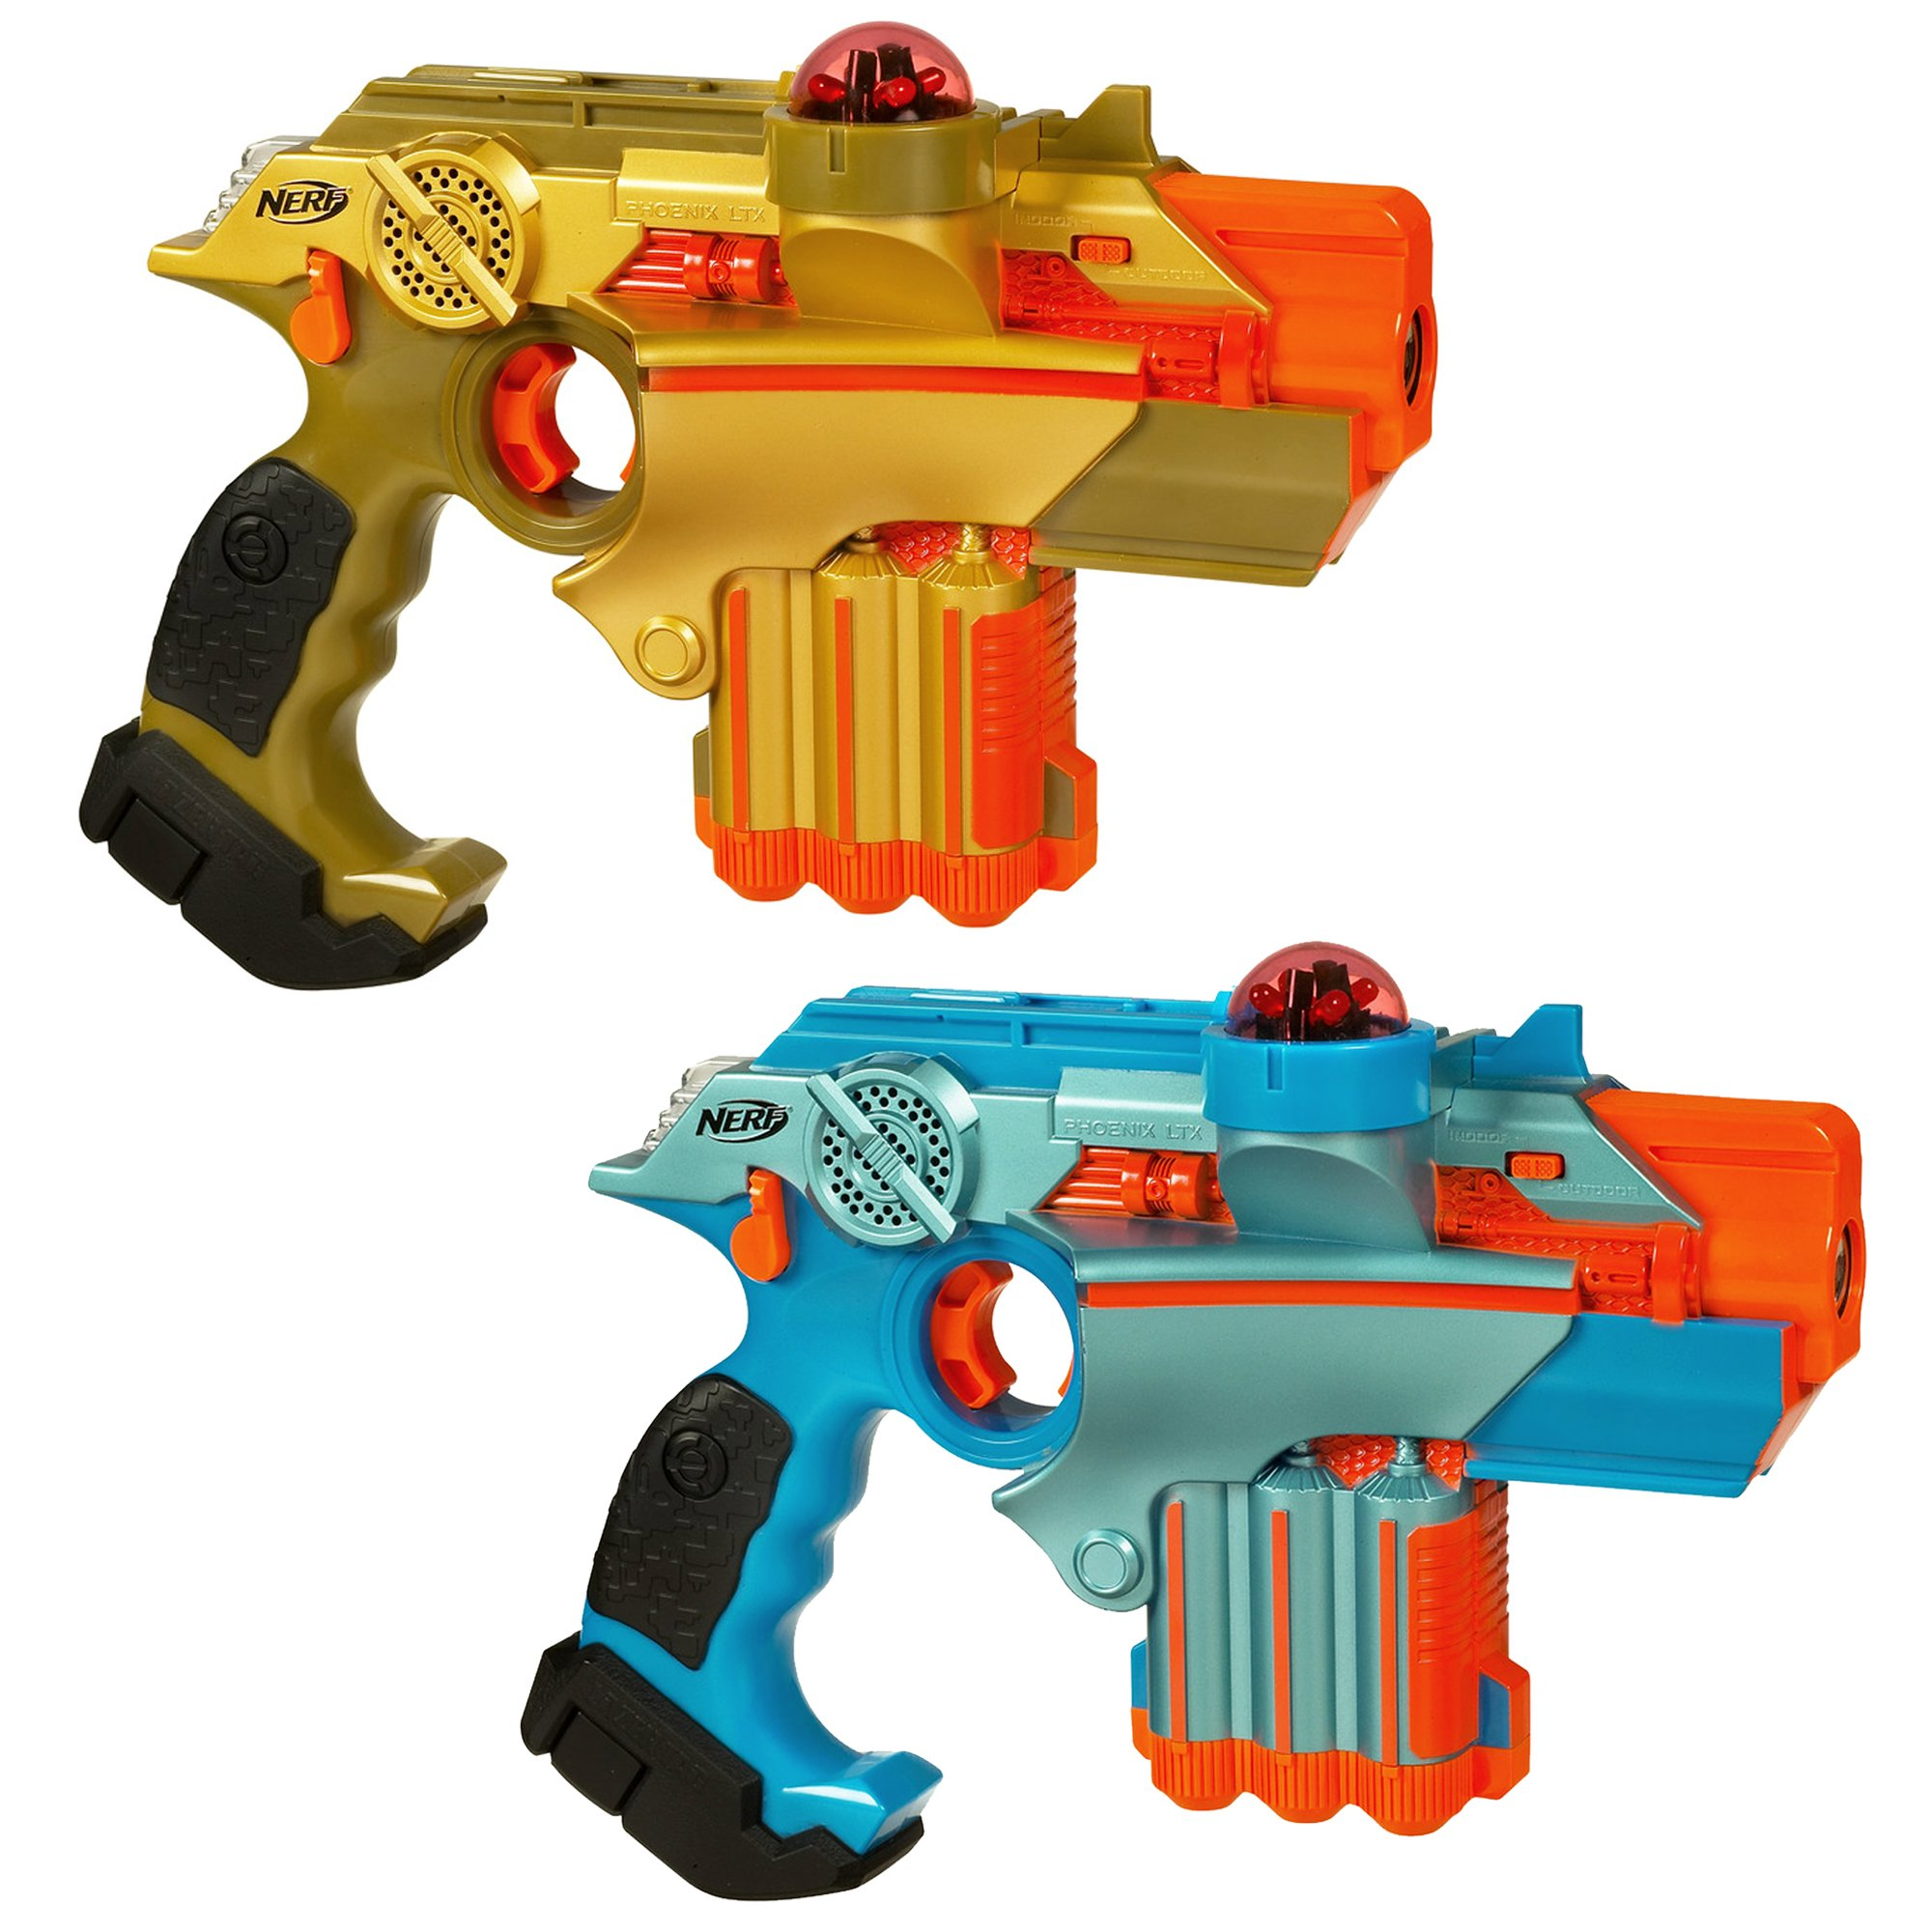 Nerf Official: Lazer Tag Phoenix LTX Tagger 2-pack - Fun Multiplayer Laser Tag Game (Amazon Exclusive)